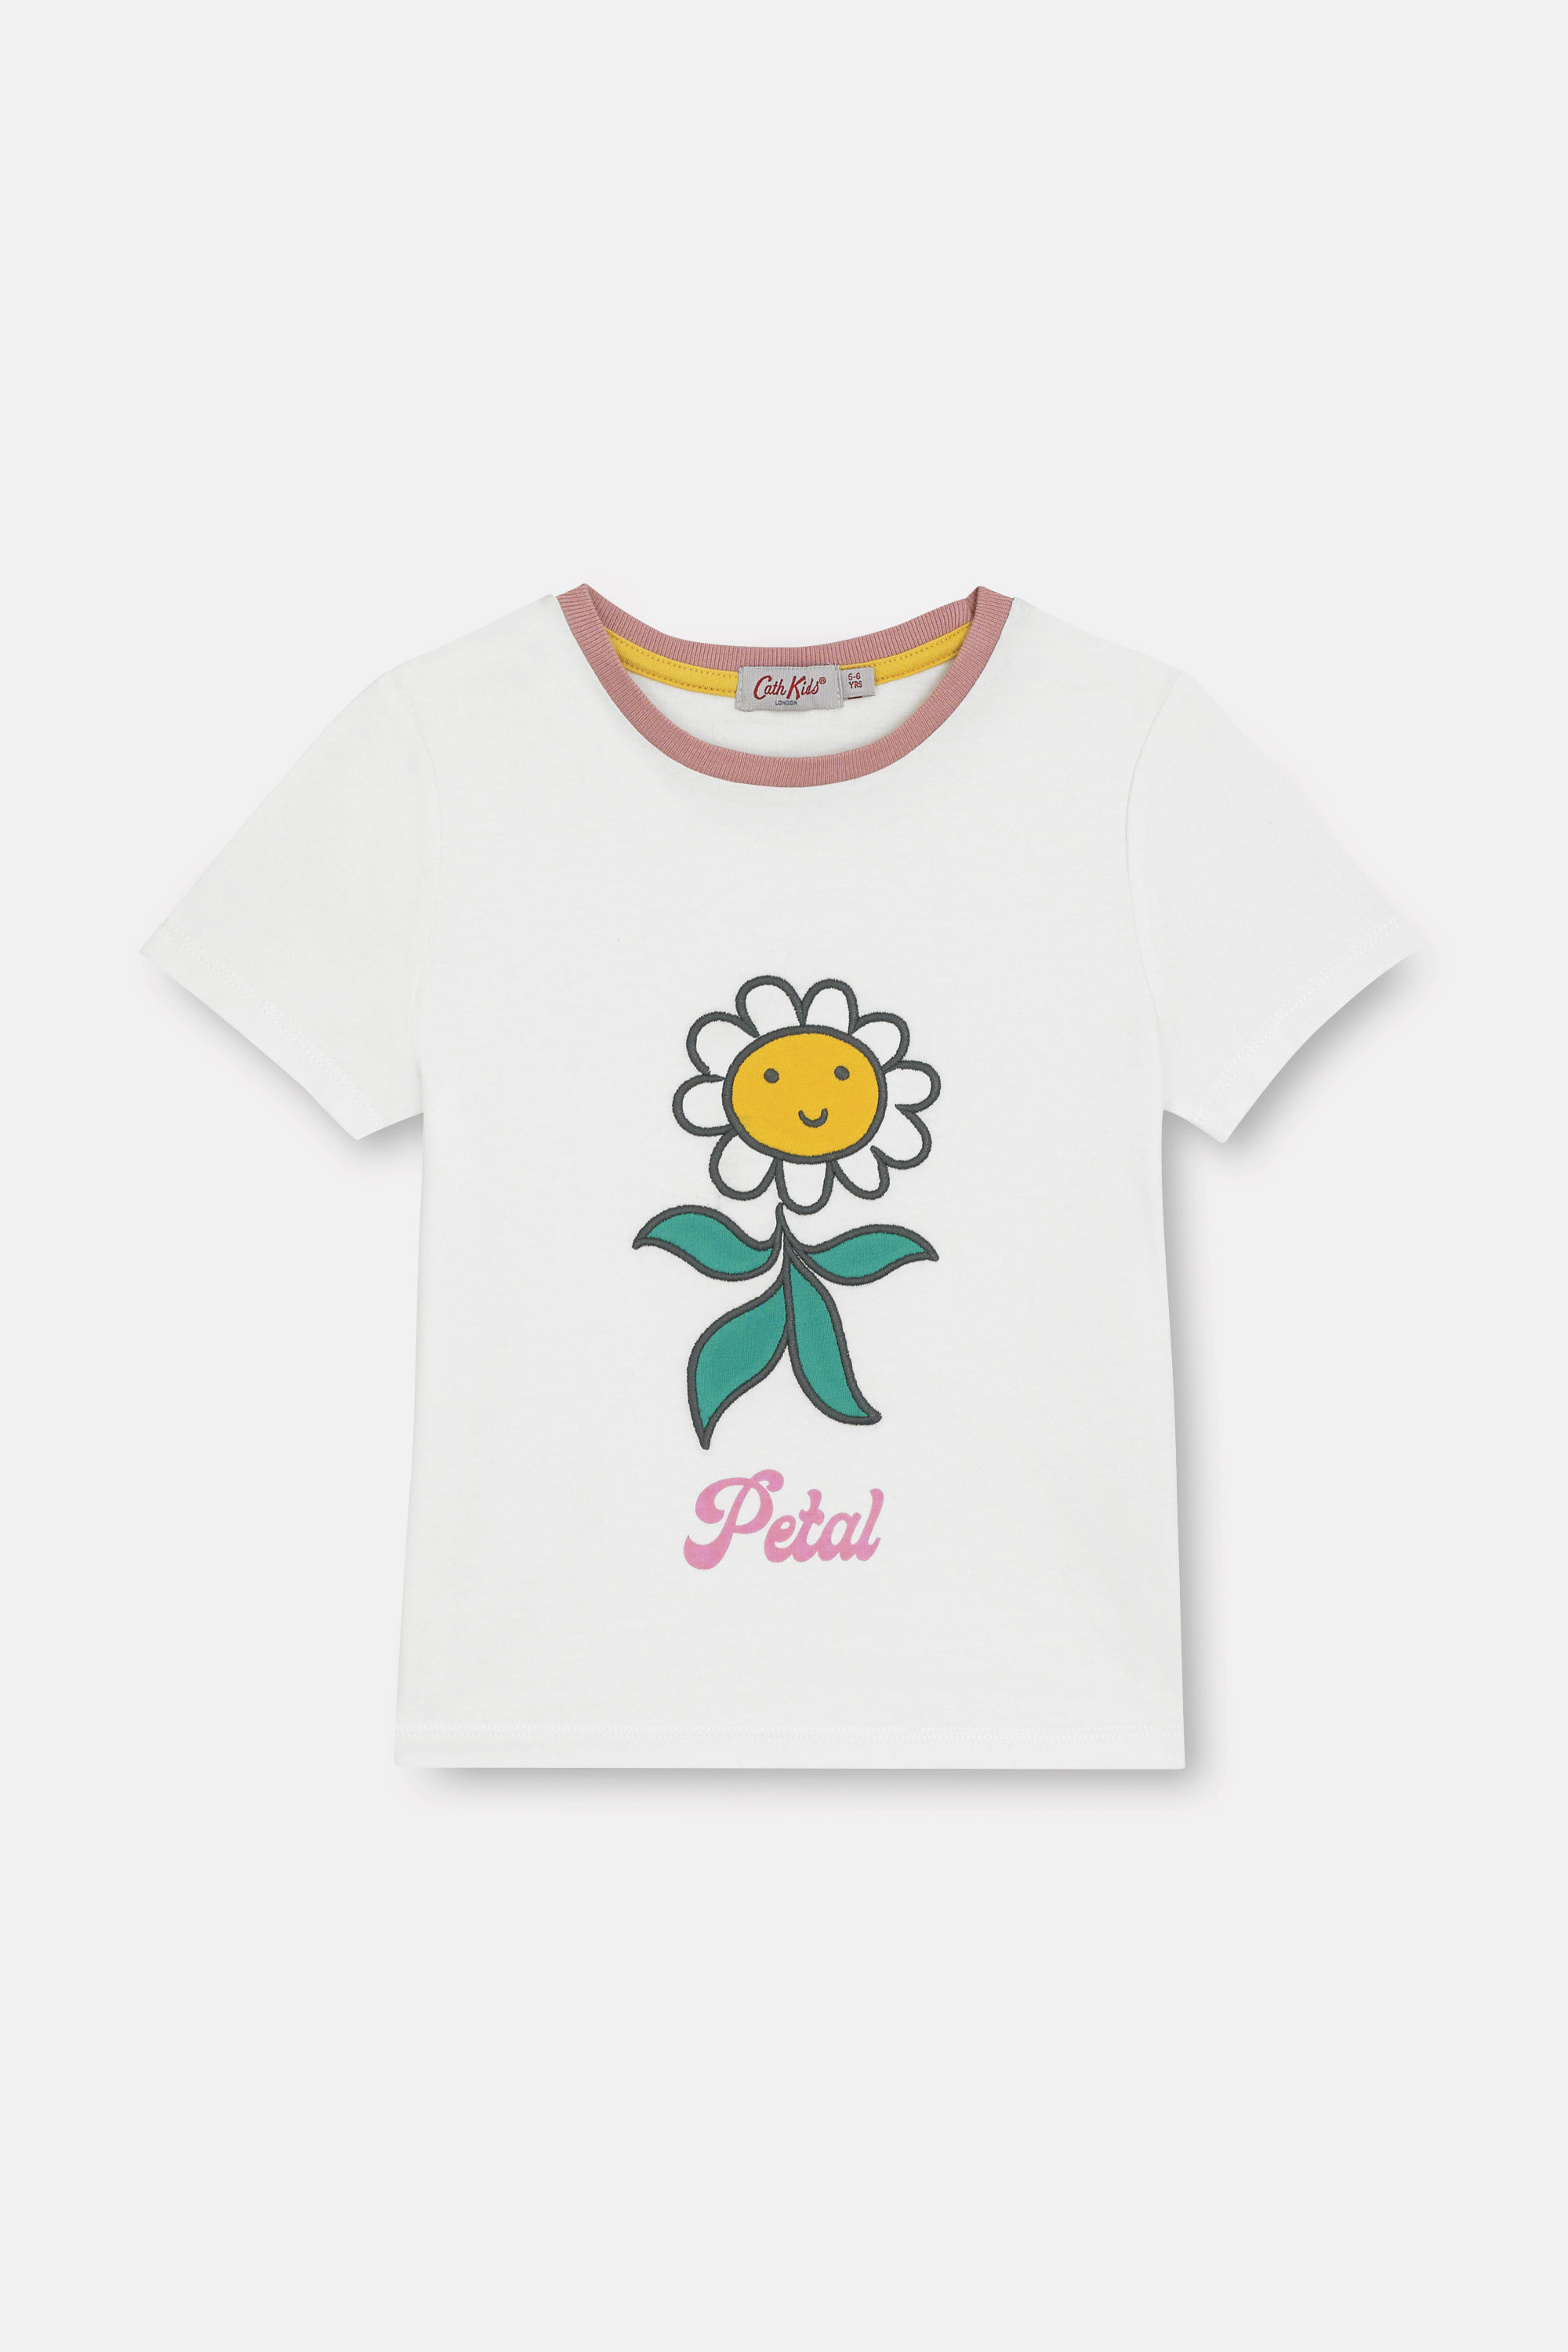 Cath Kidston Petal Flowers Every Day T-Shirt in Ivory, 3-4 yr